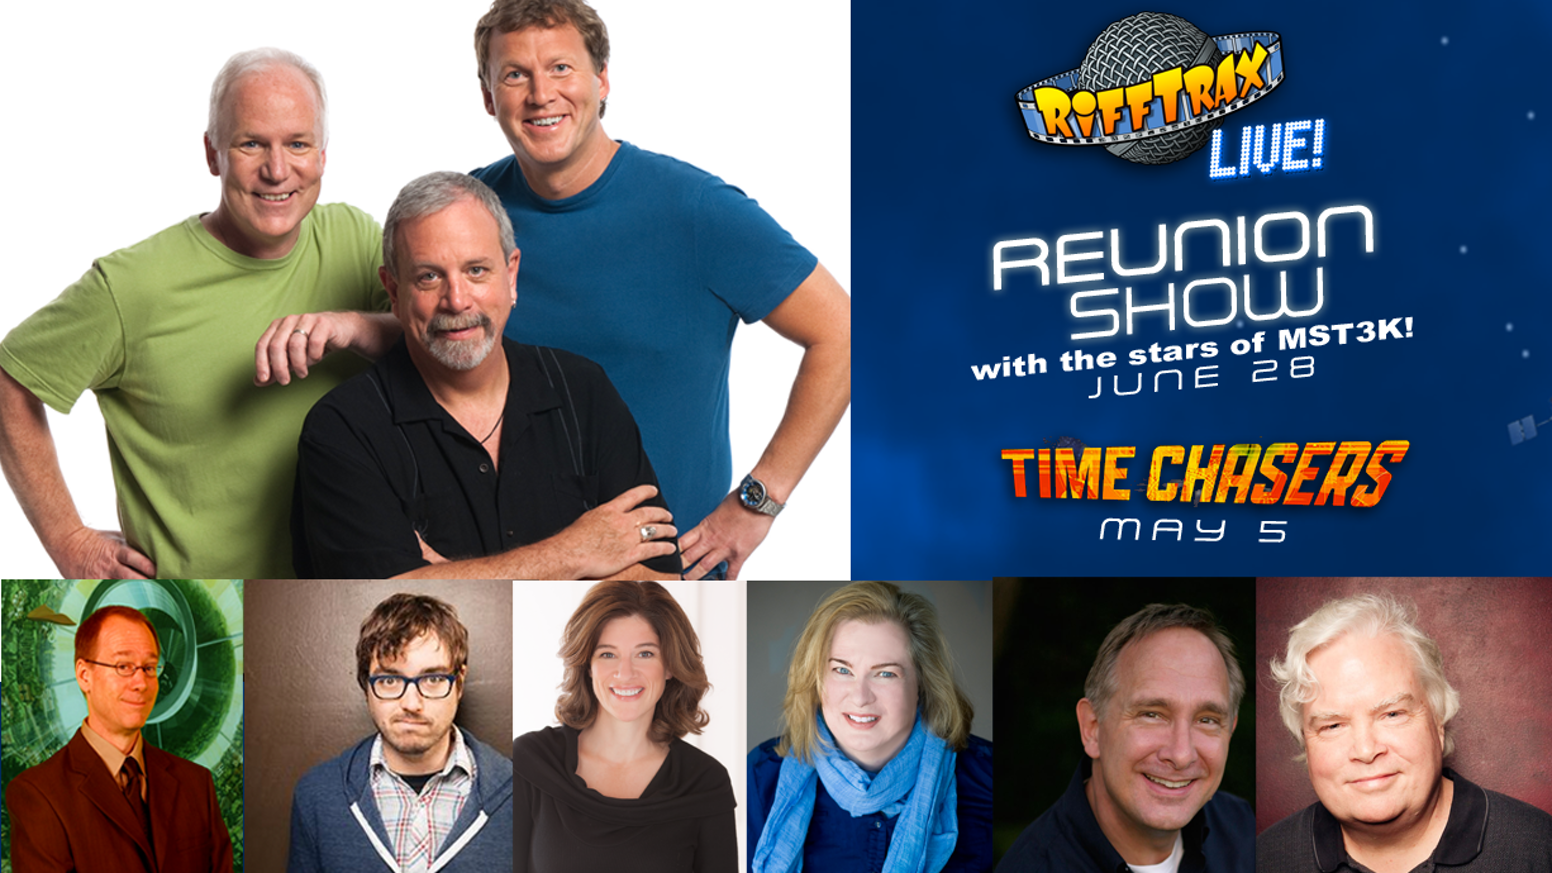 Rifftrax Live 2016 Mst3k Reunion Time Chasers Live More By